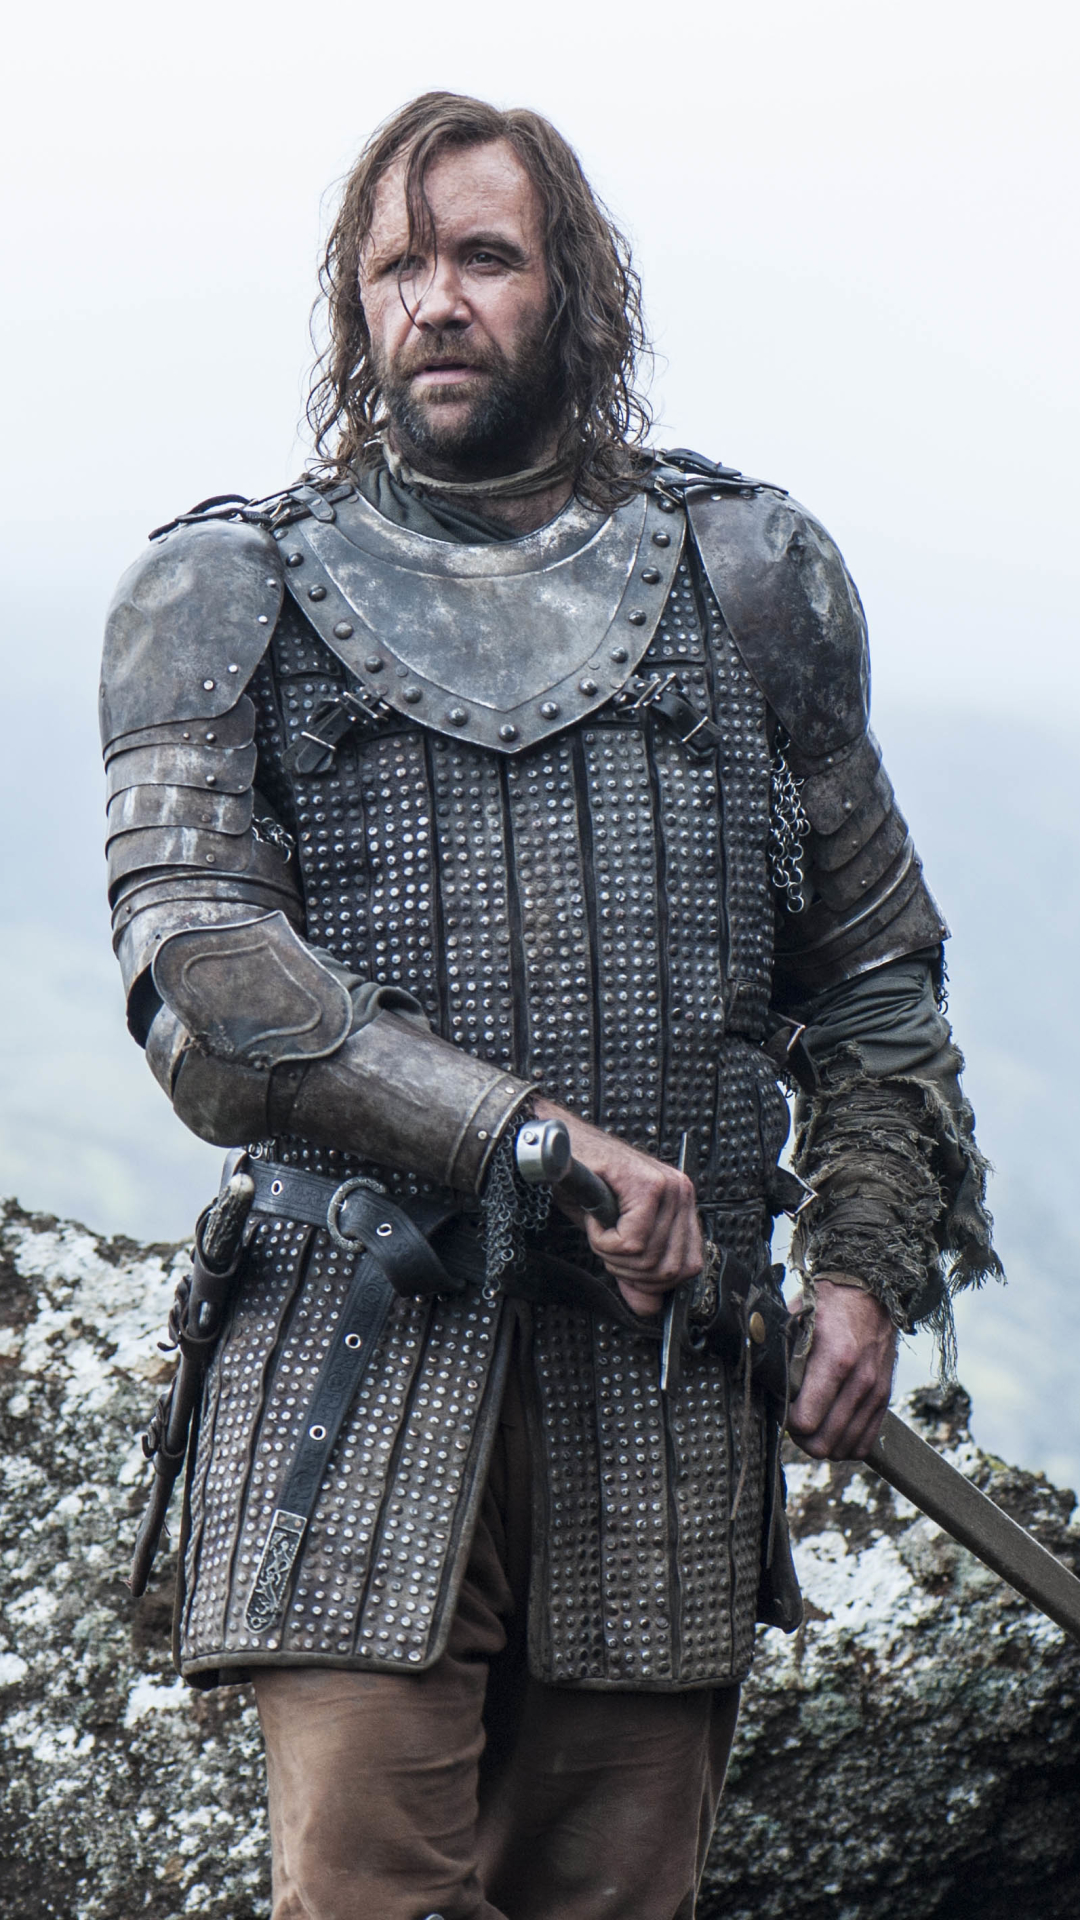 Tv Show Game Of Thrones 1080x1920 Wallpaper Id 693976 Mobile